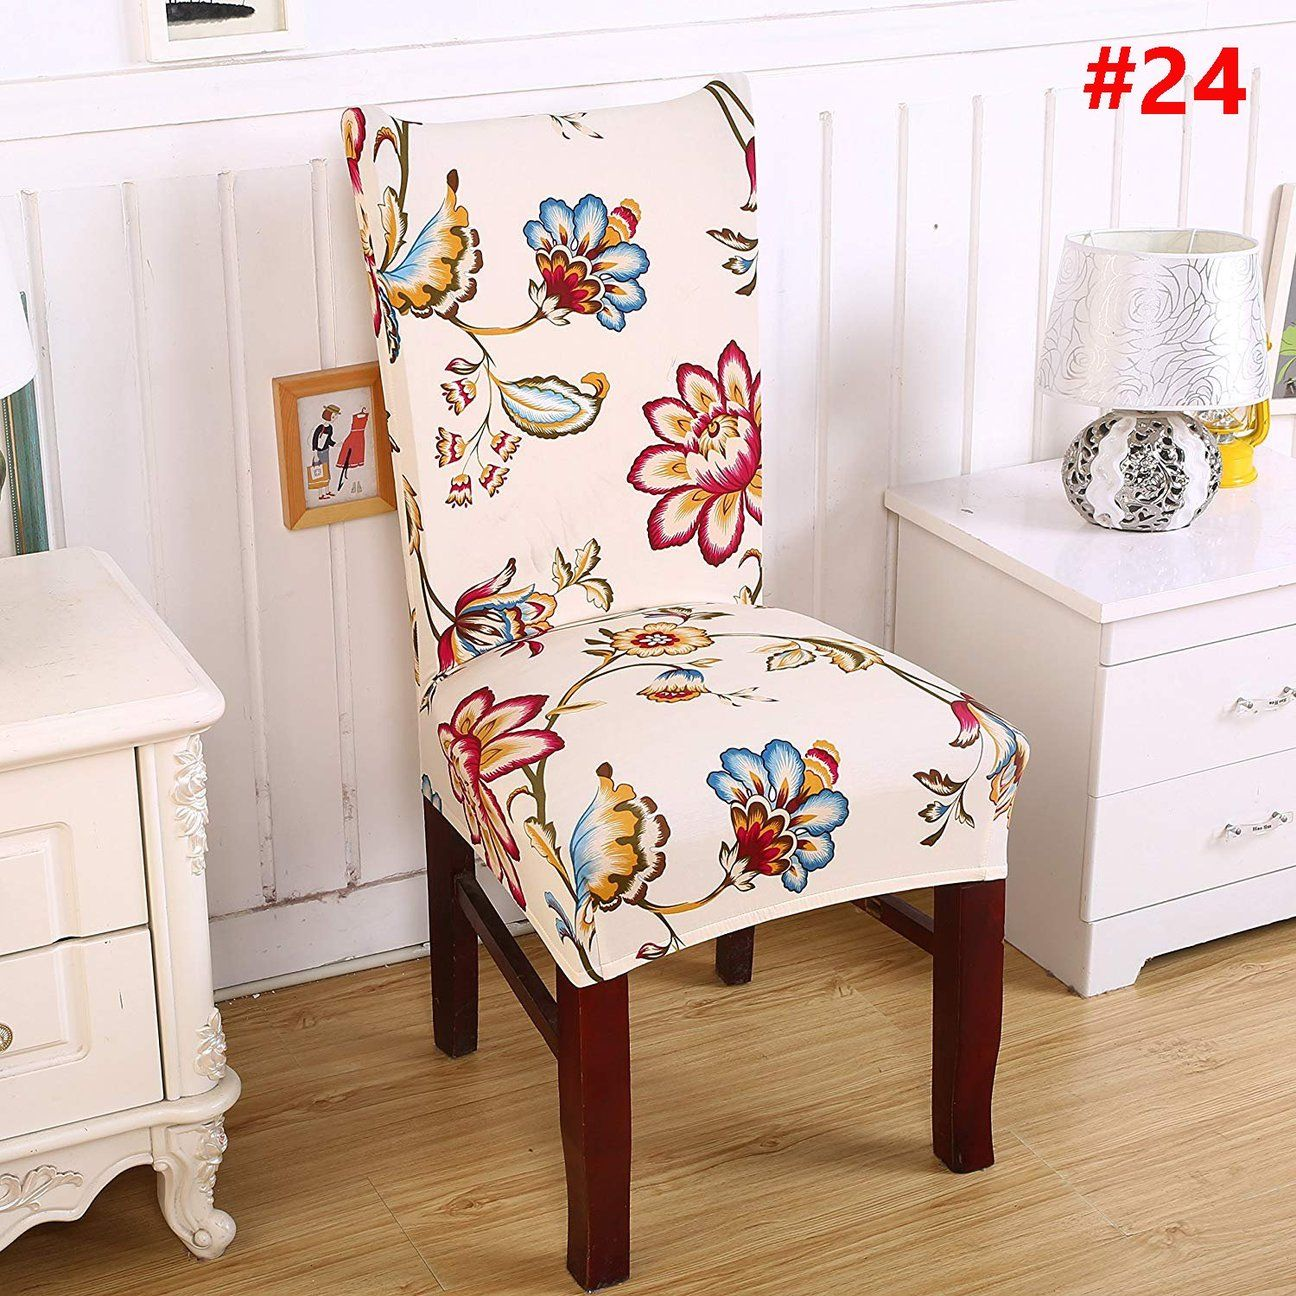 Decorative chair coversbuy 6 dining room chair covers